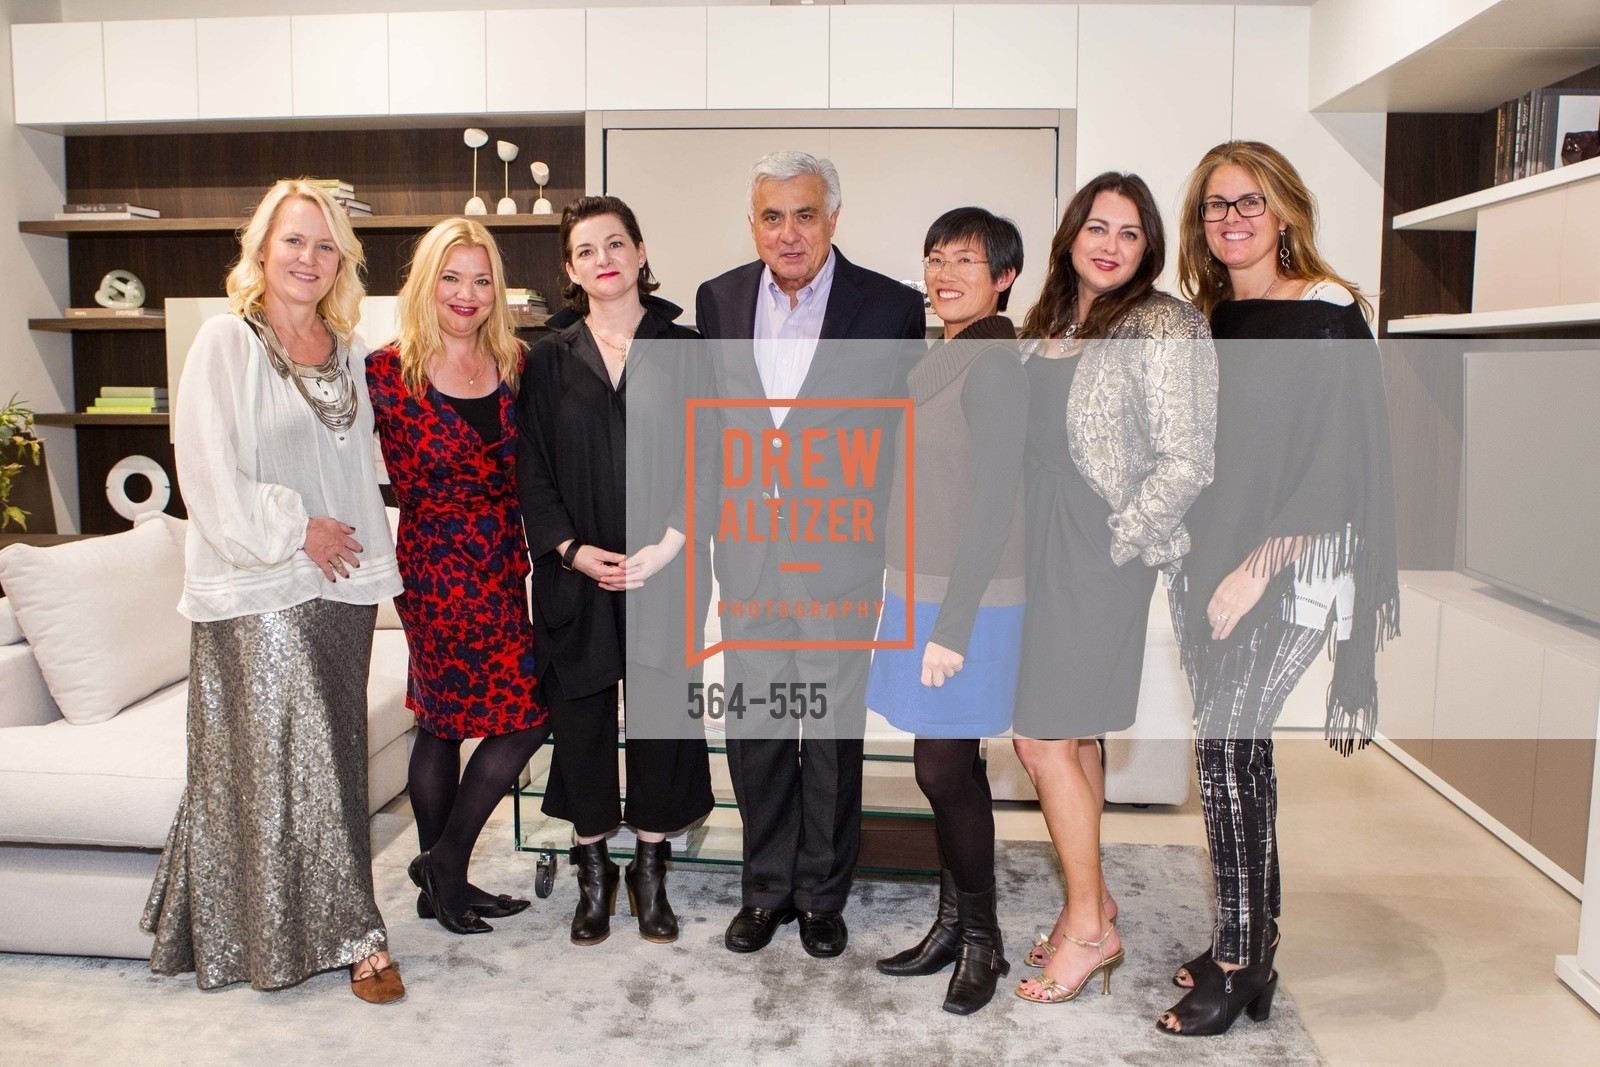 Lisa Blecker, Eva Eastman, Alisa Carroll, Alf Nucifora, Lydia Lee, Amelia Hyde, DeForest Wayne, SFC&G Real Estate Survey Reveal, Resource Furniture, November 19th, 2015,Drew Altizer, Drew Altizer Photography, full-service agency, private events, San Francisco photographer, photographer california